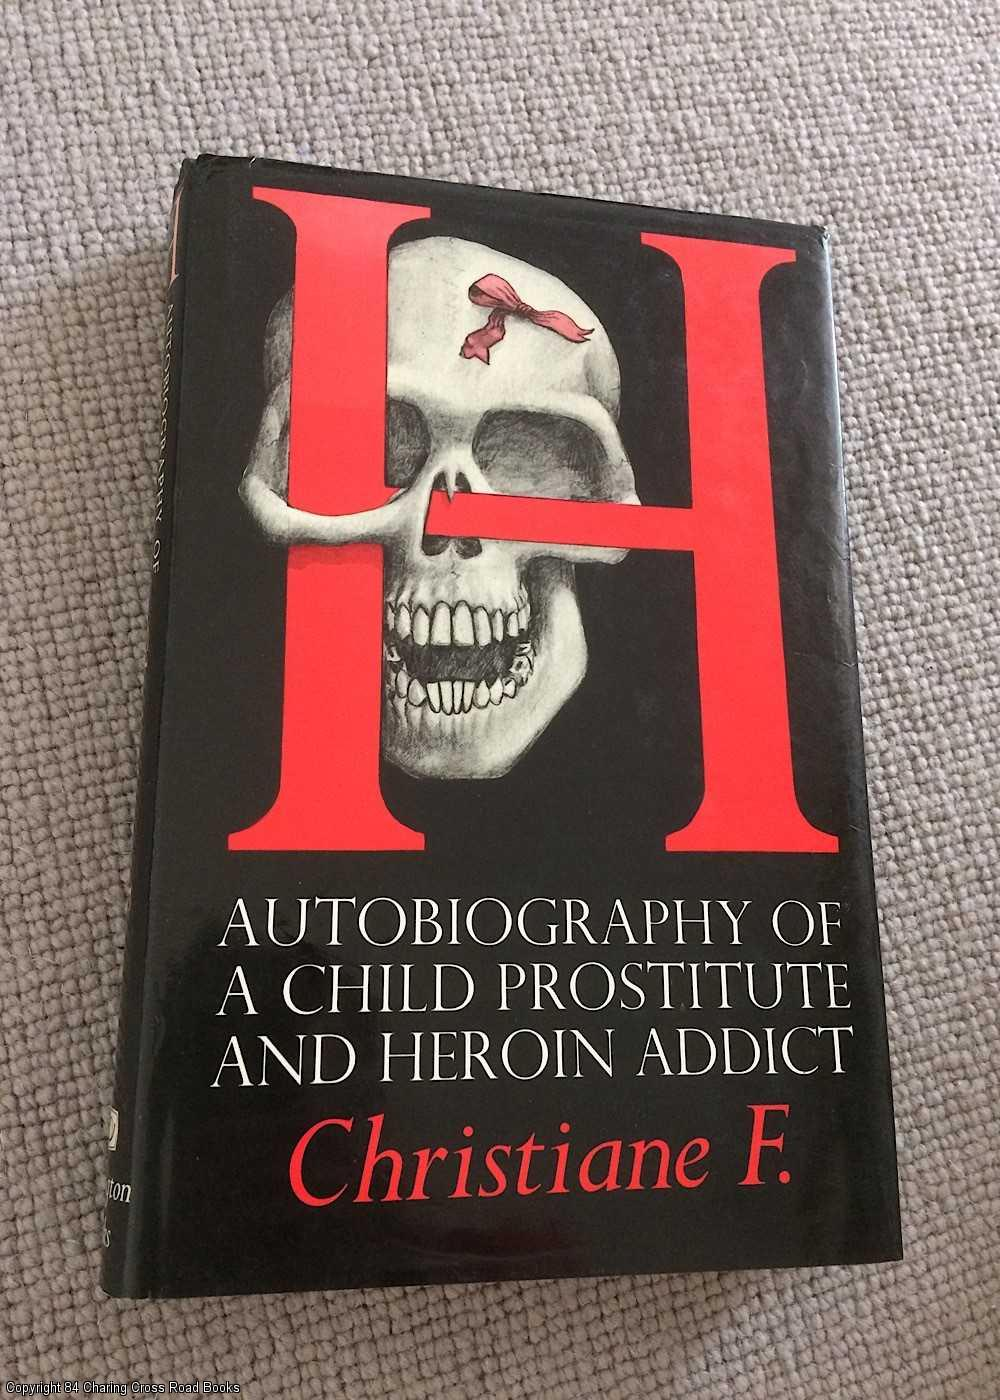 CHRISTIANE F. - H.: Autobiography of a Child Prostitute and Heroin Addict